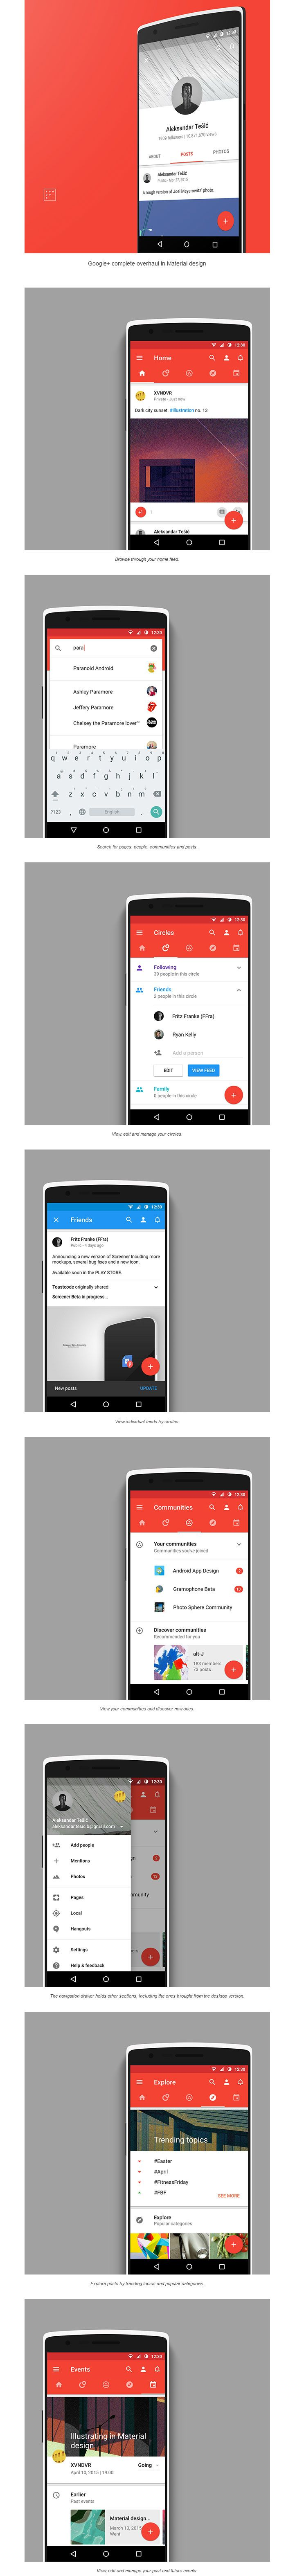 Google+ complete material redesign